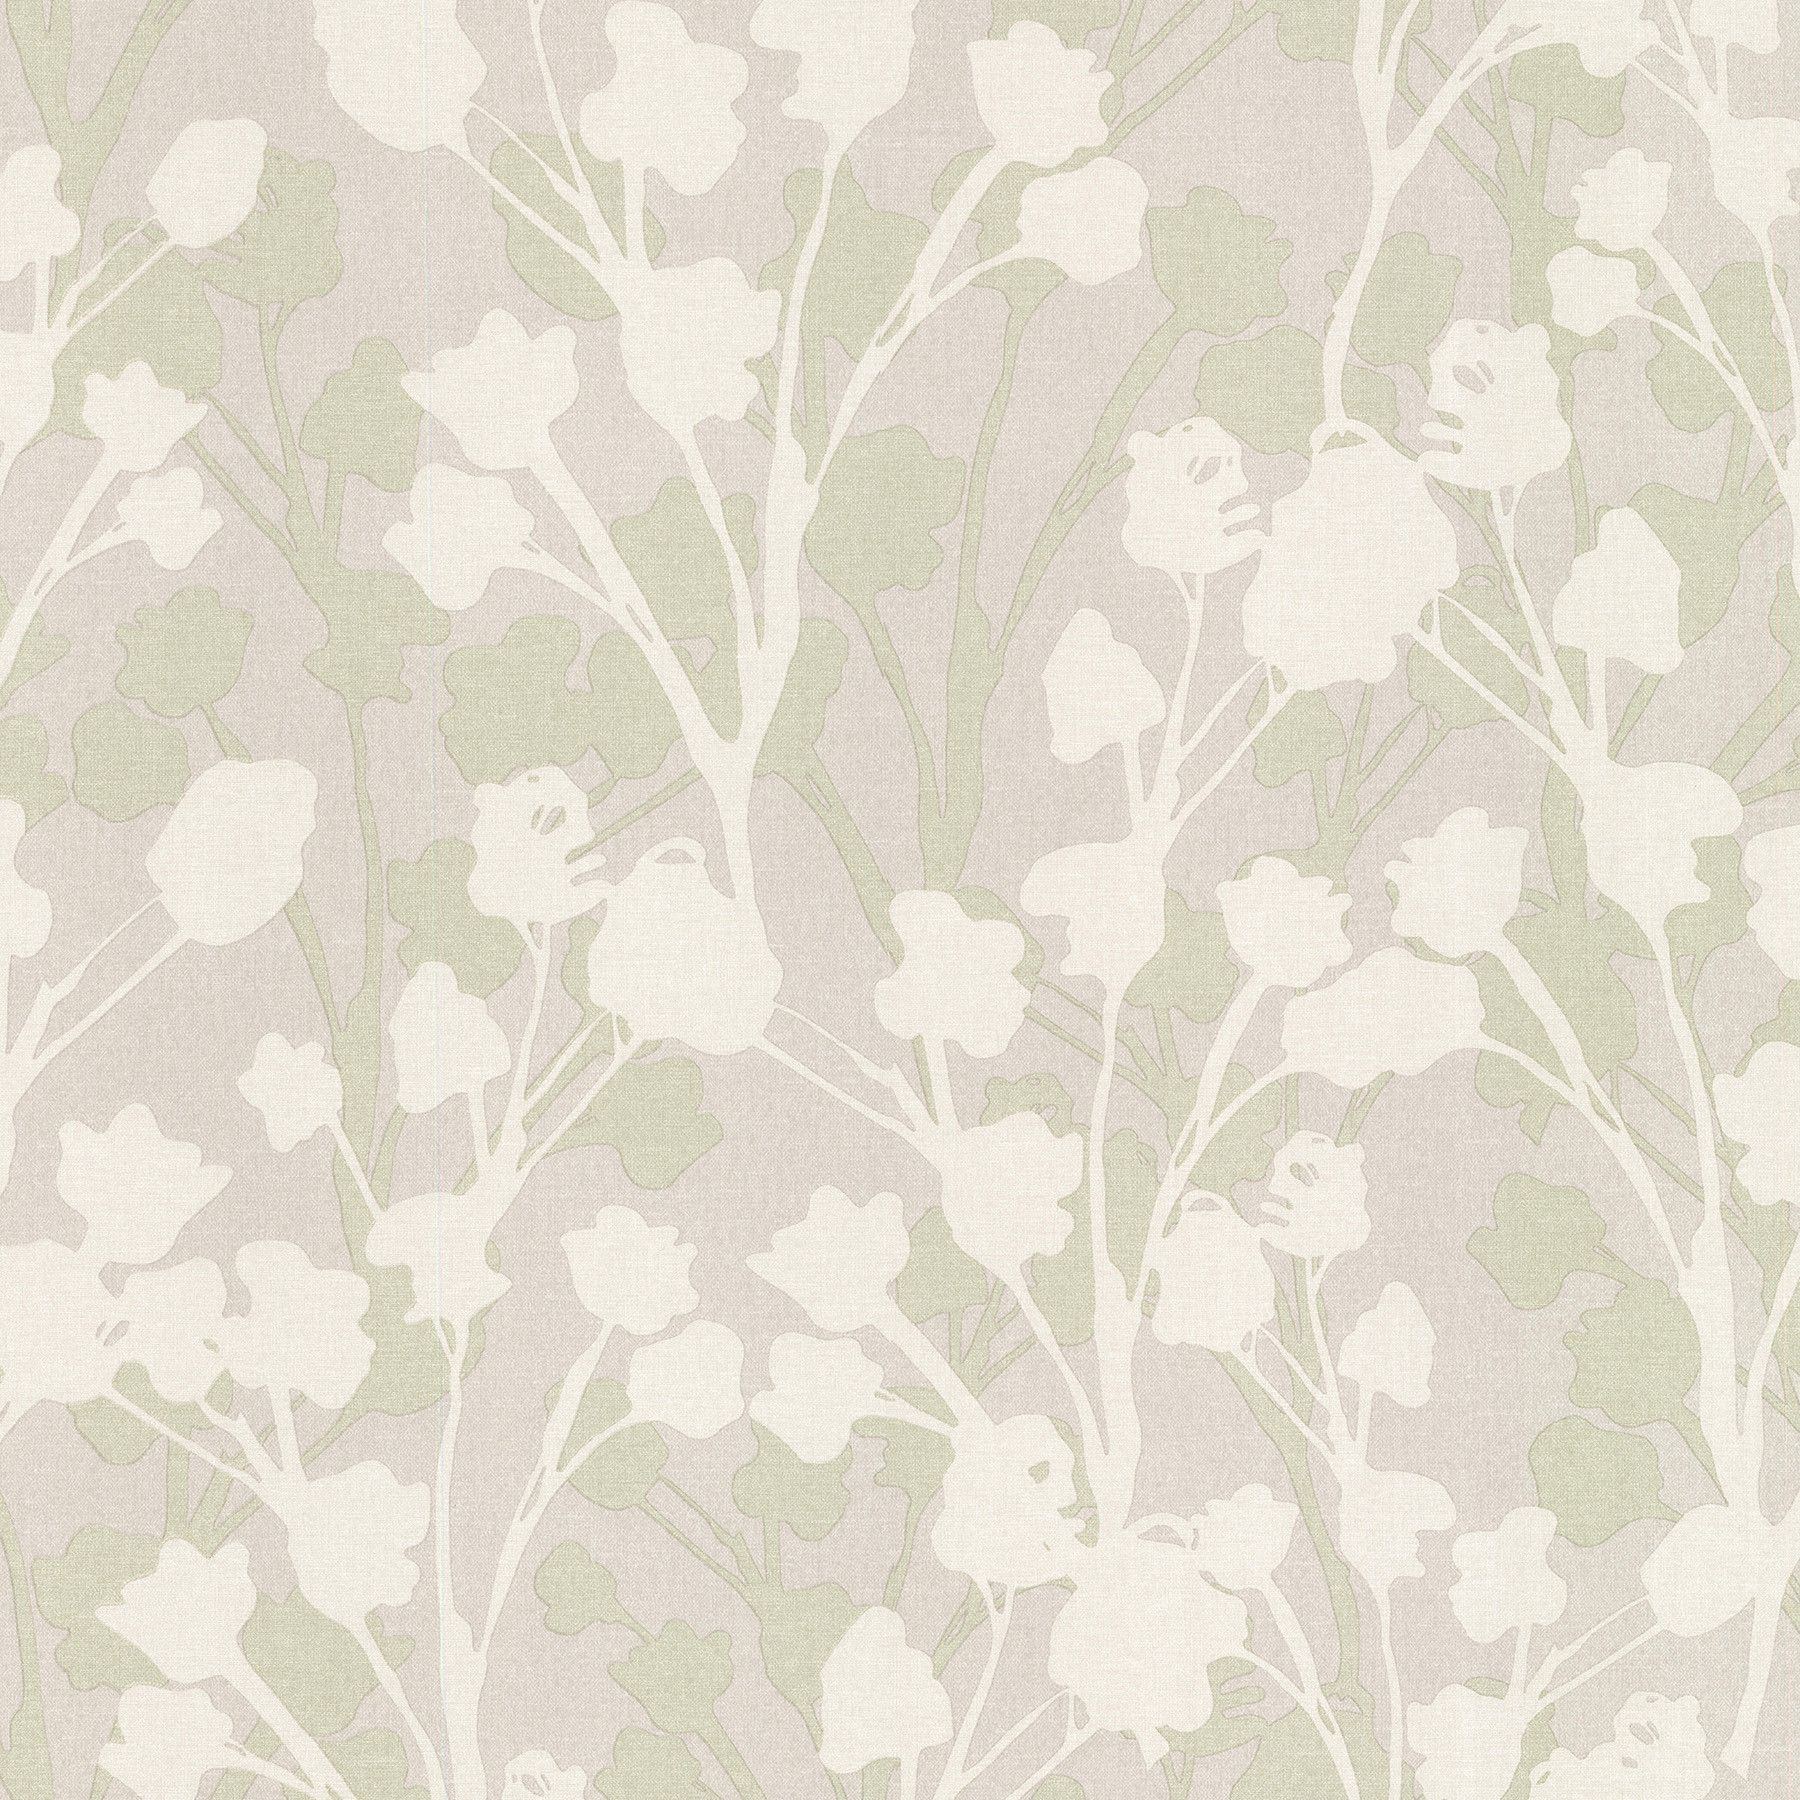 "Kitchen & Bath Resource III Lawson 33' x 20.5"" Floral 3D Embossed Wallpaper"